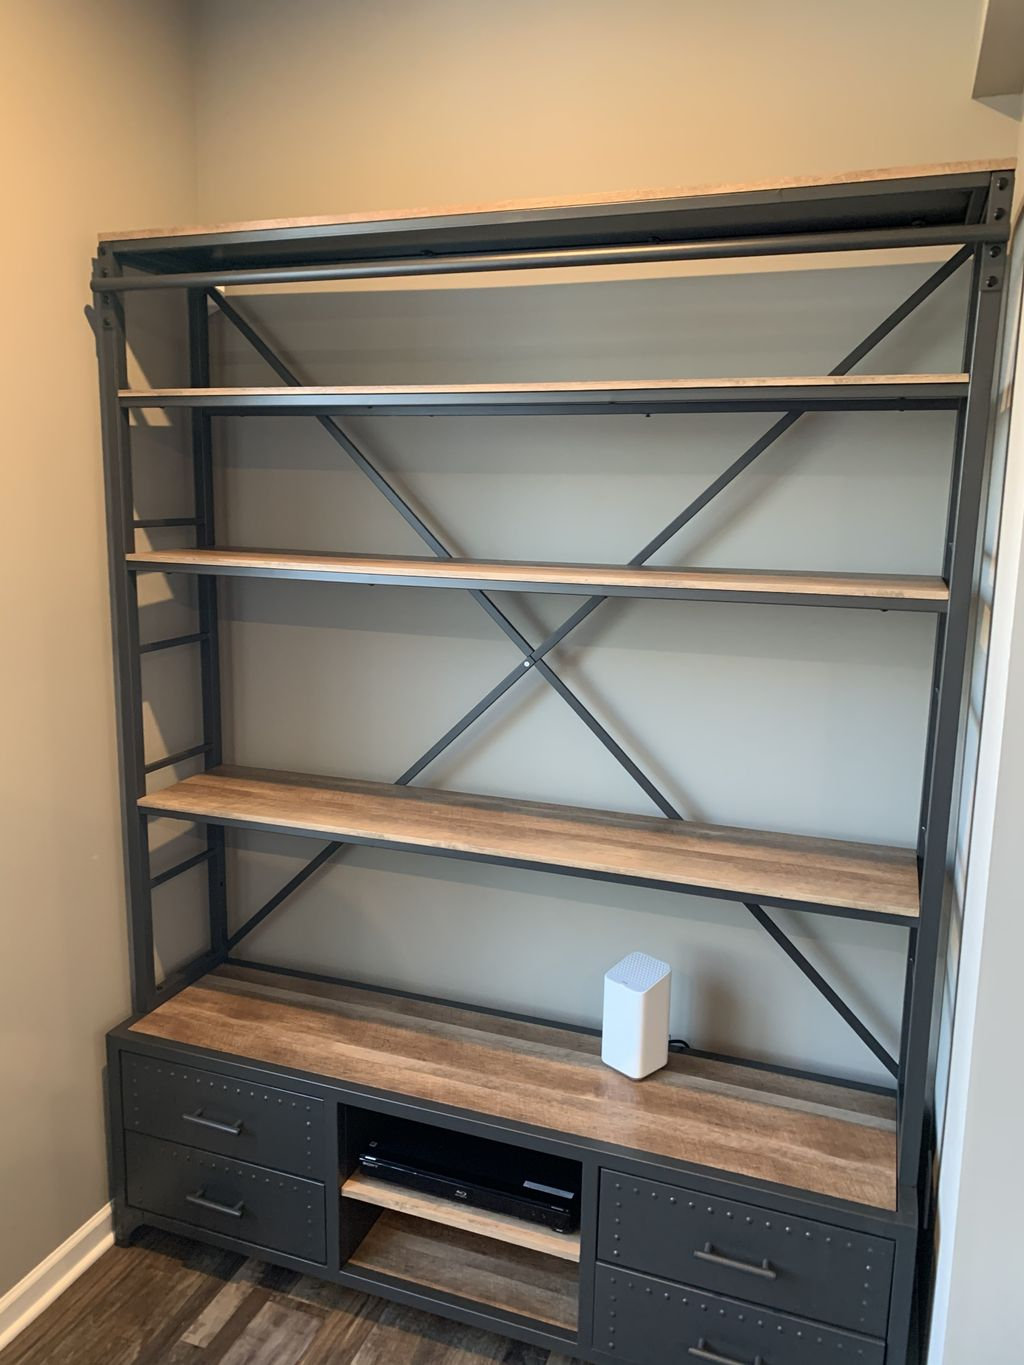 Double tiered bookshelf with sliding ladder